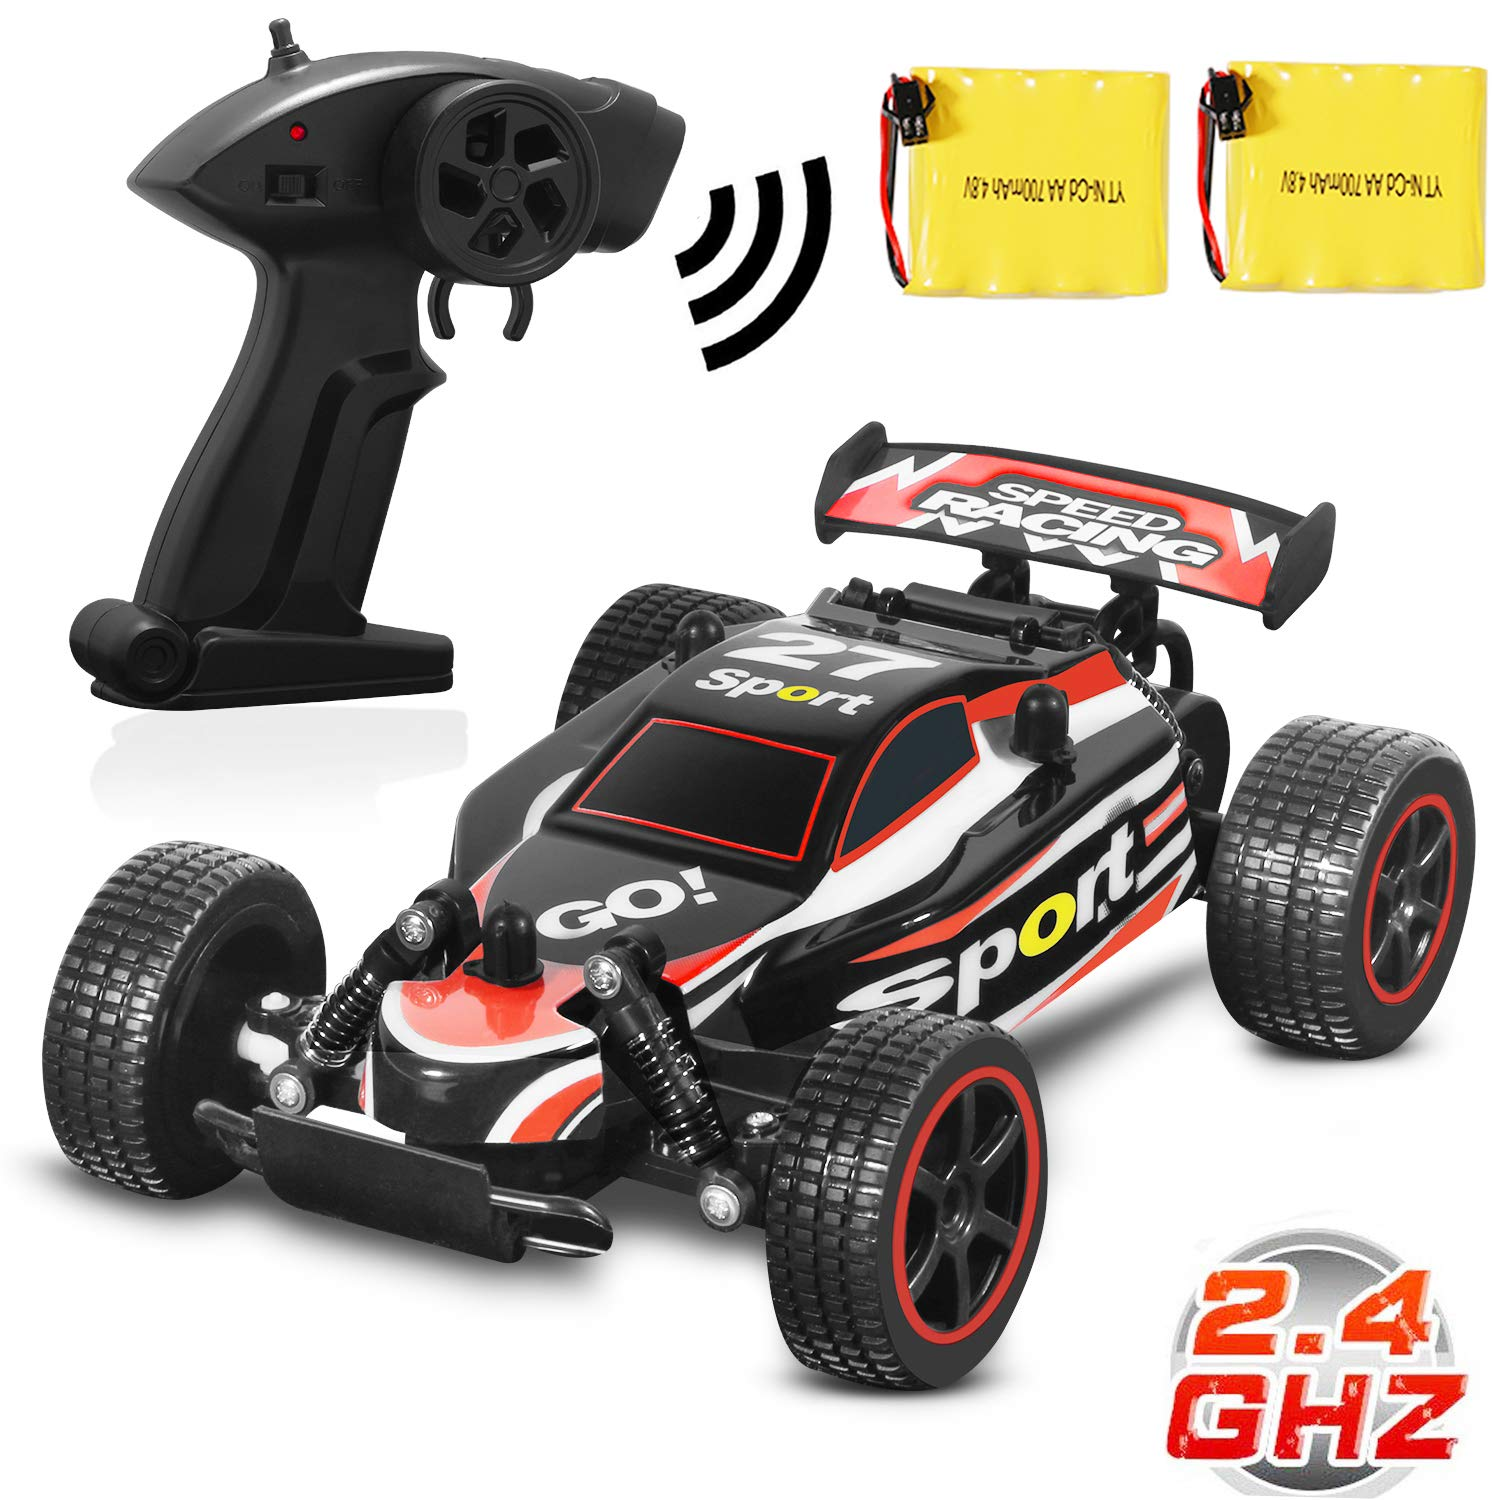 Blexy RC Racing Cars 2.4Ghz High Speed Radio Remote Control Car 1: 20 2WD Racing Toy Cars Electric Vehicle Fast Race Buggy Hobby Car Red 211